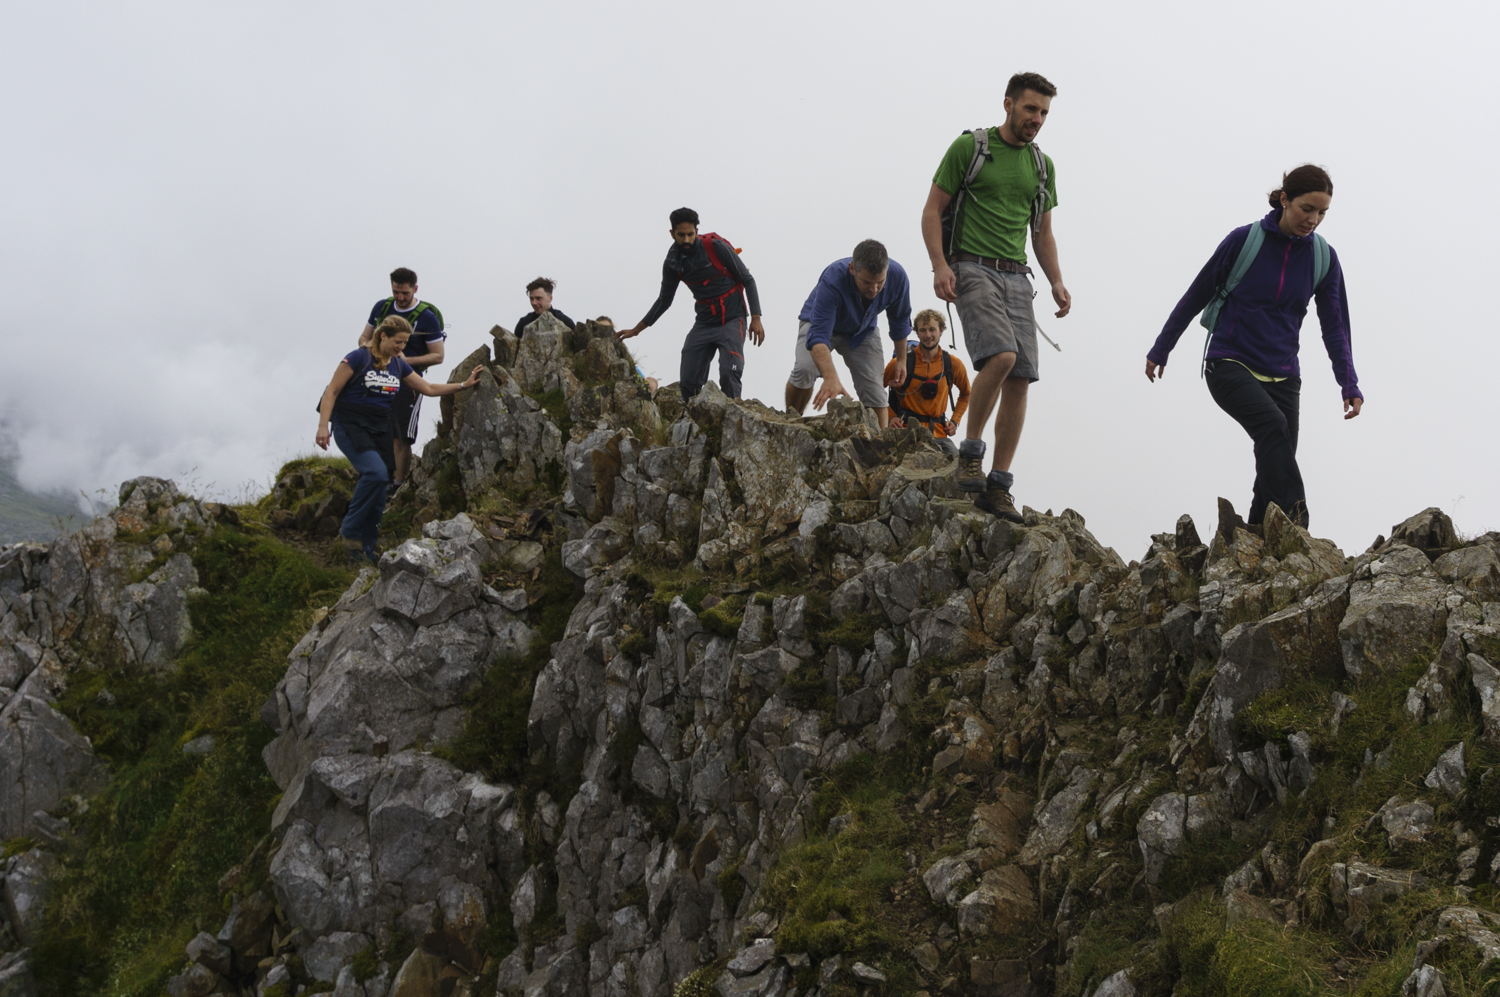 Mountain Scrambling   See more of the mountains   Learn More